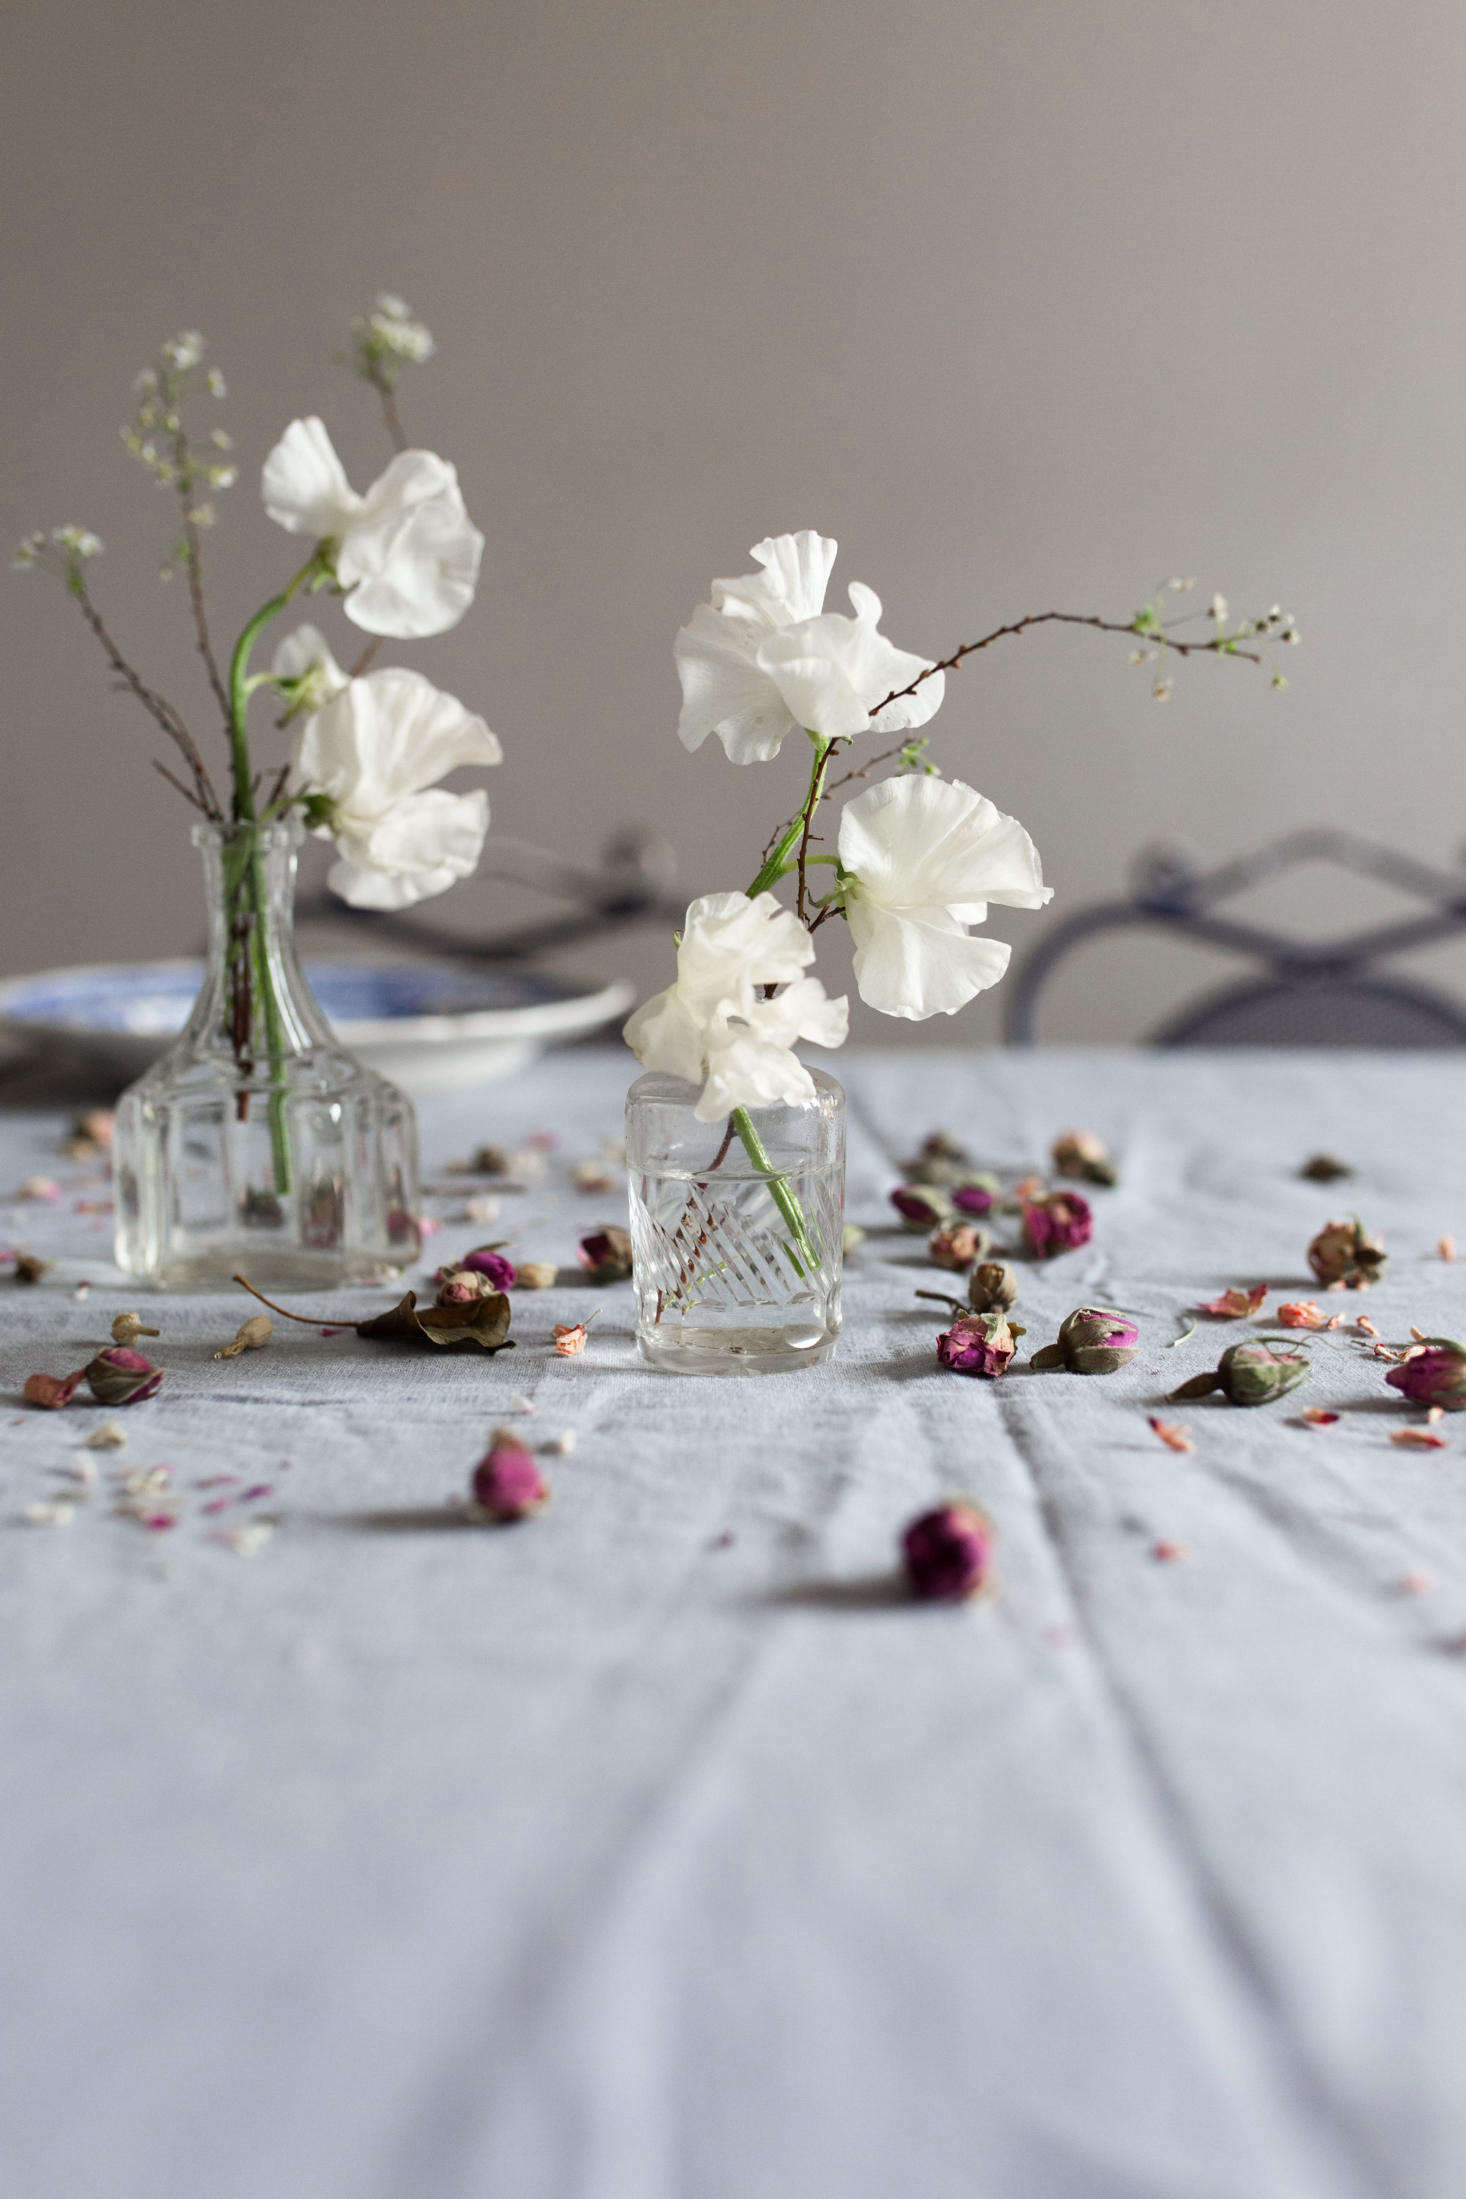 Let the table be a little beautifully imperfect, not prim or overdone. &#8